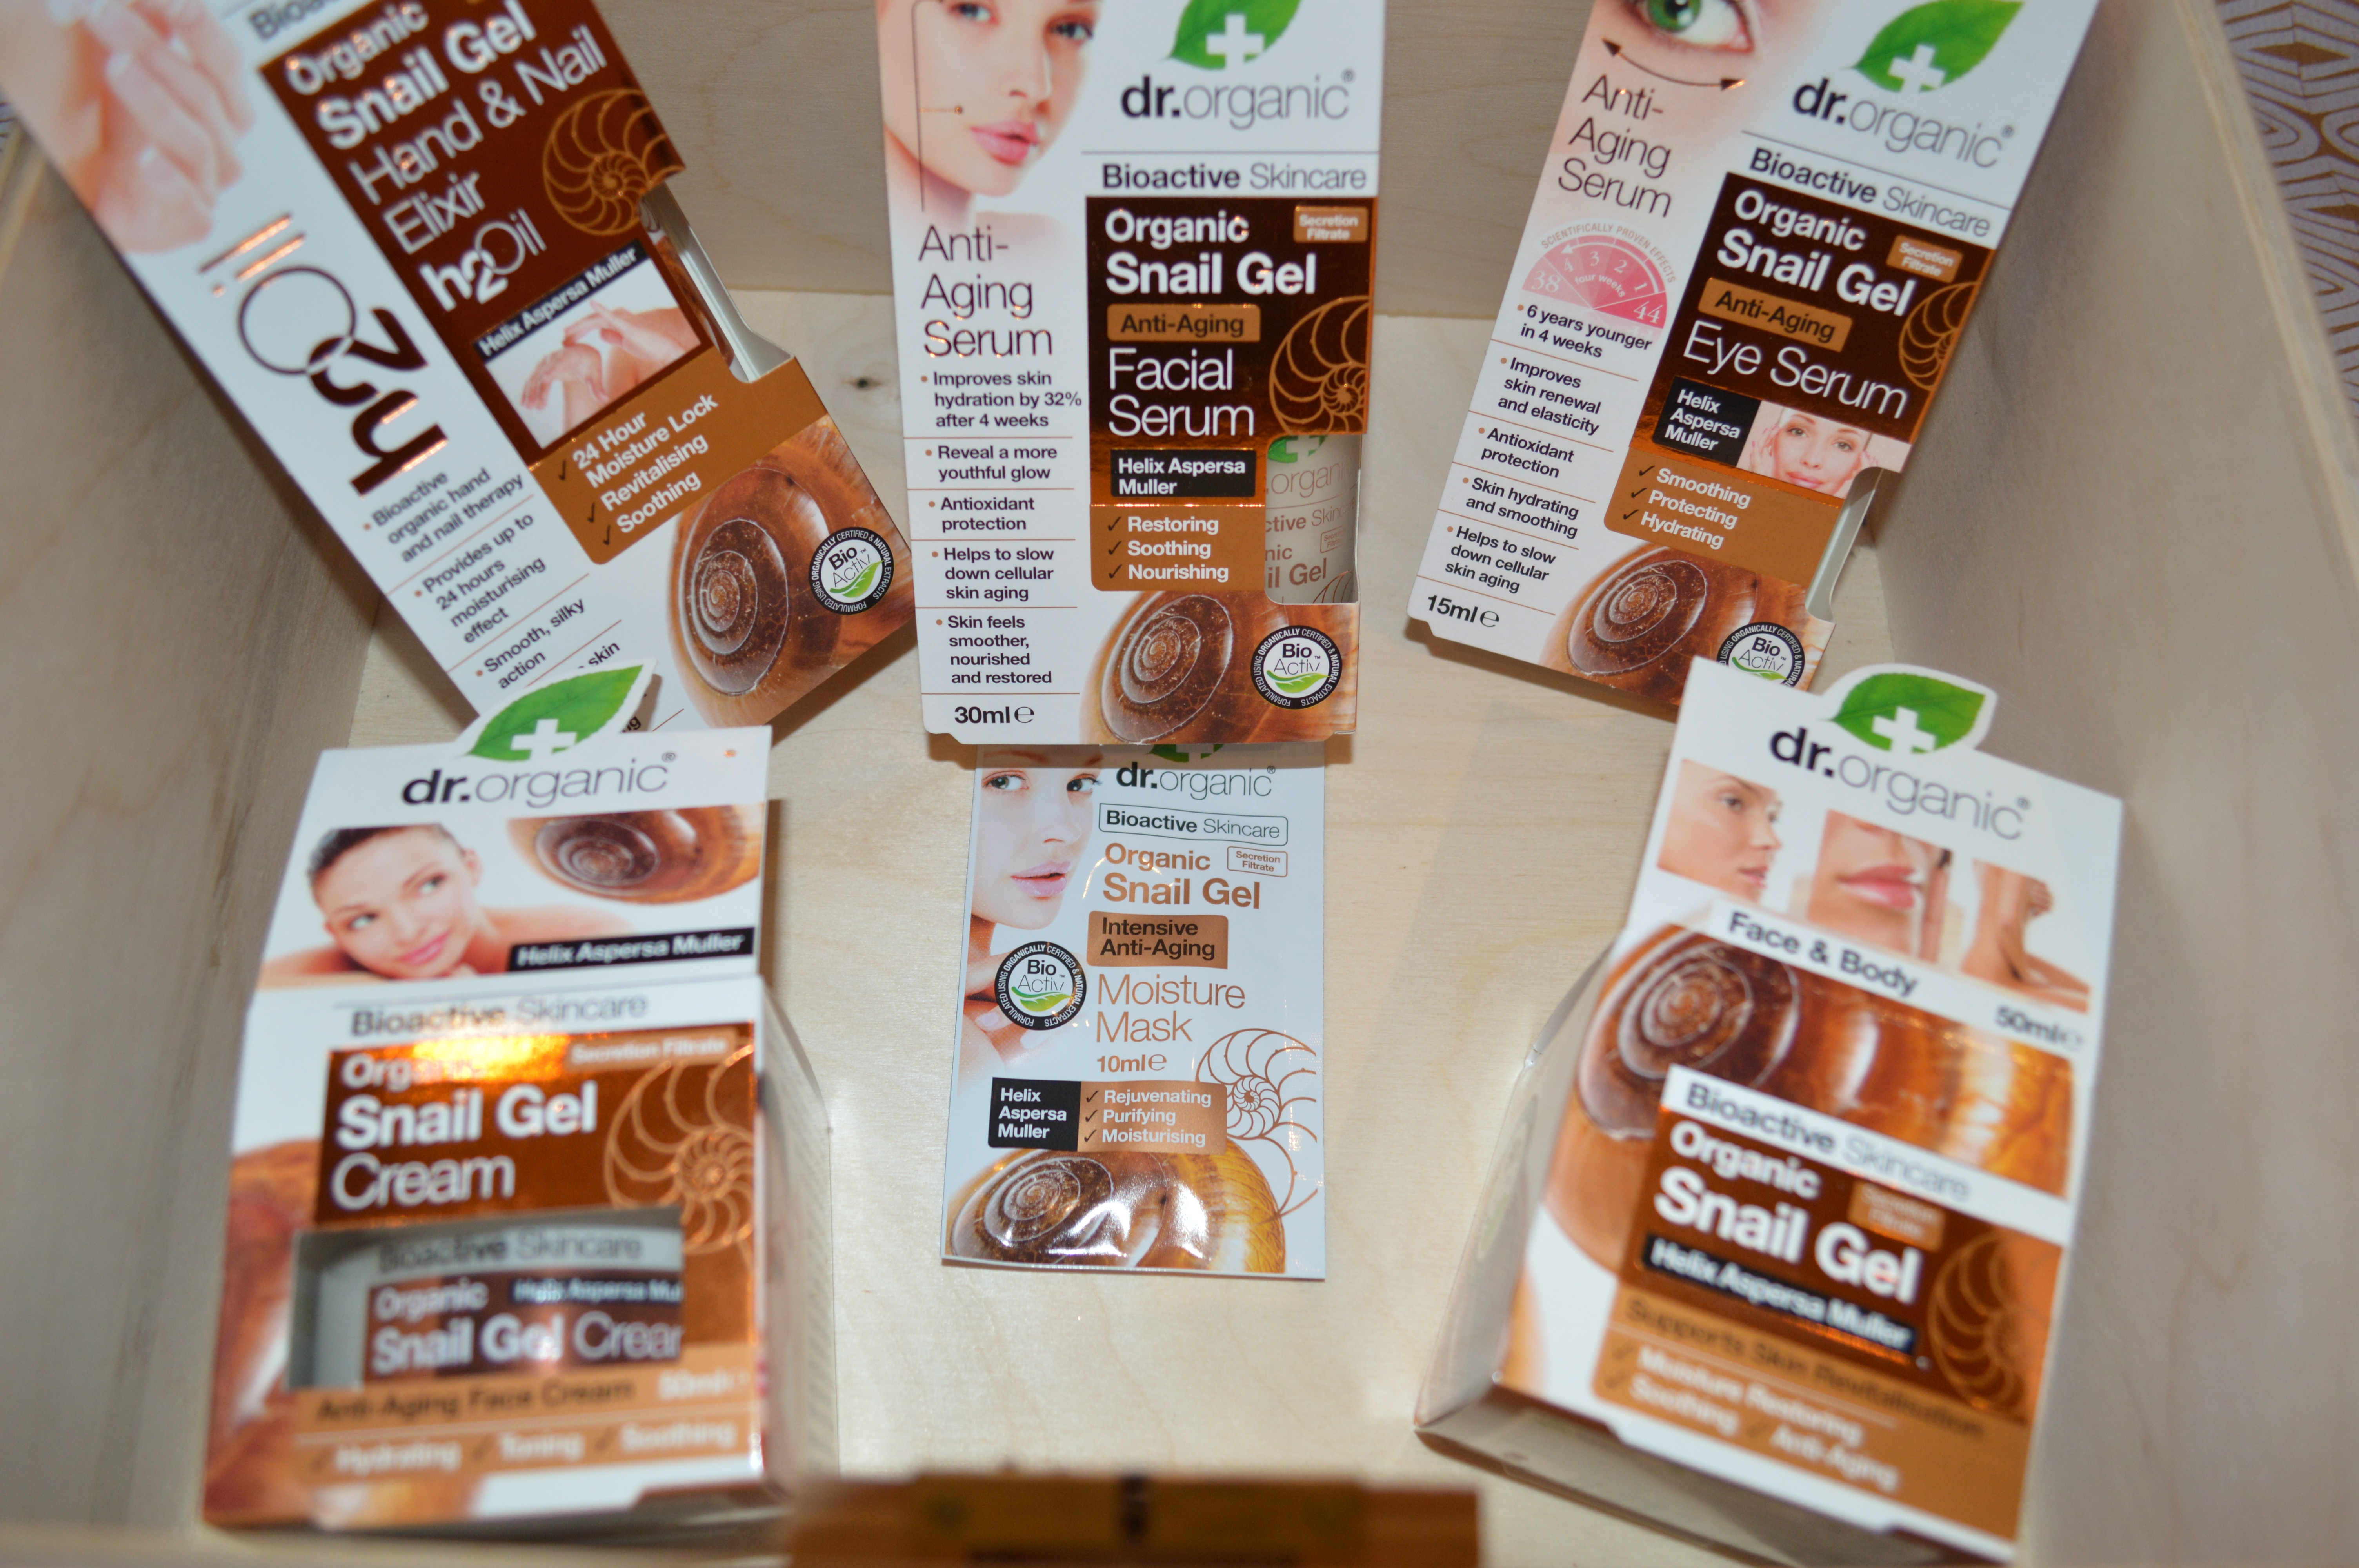 Dr. Organic Skincare Secret Revealed - All Products